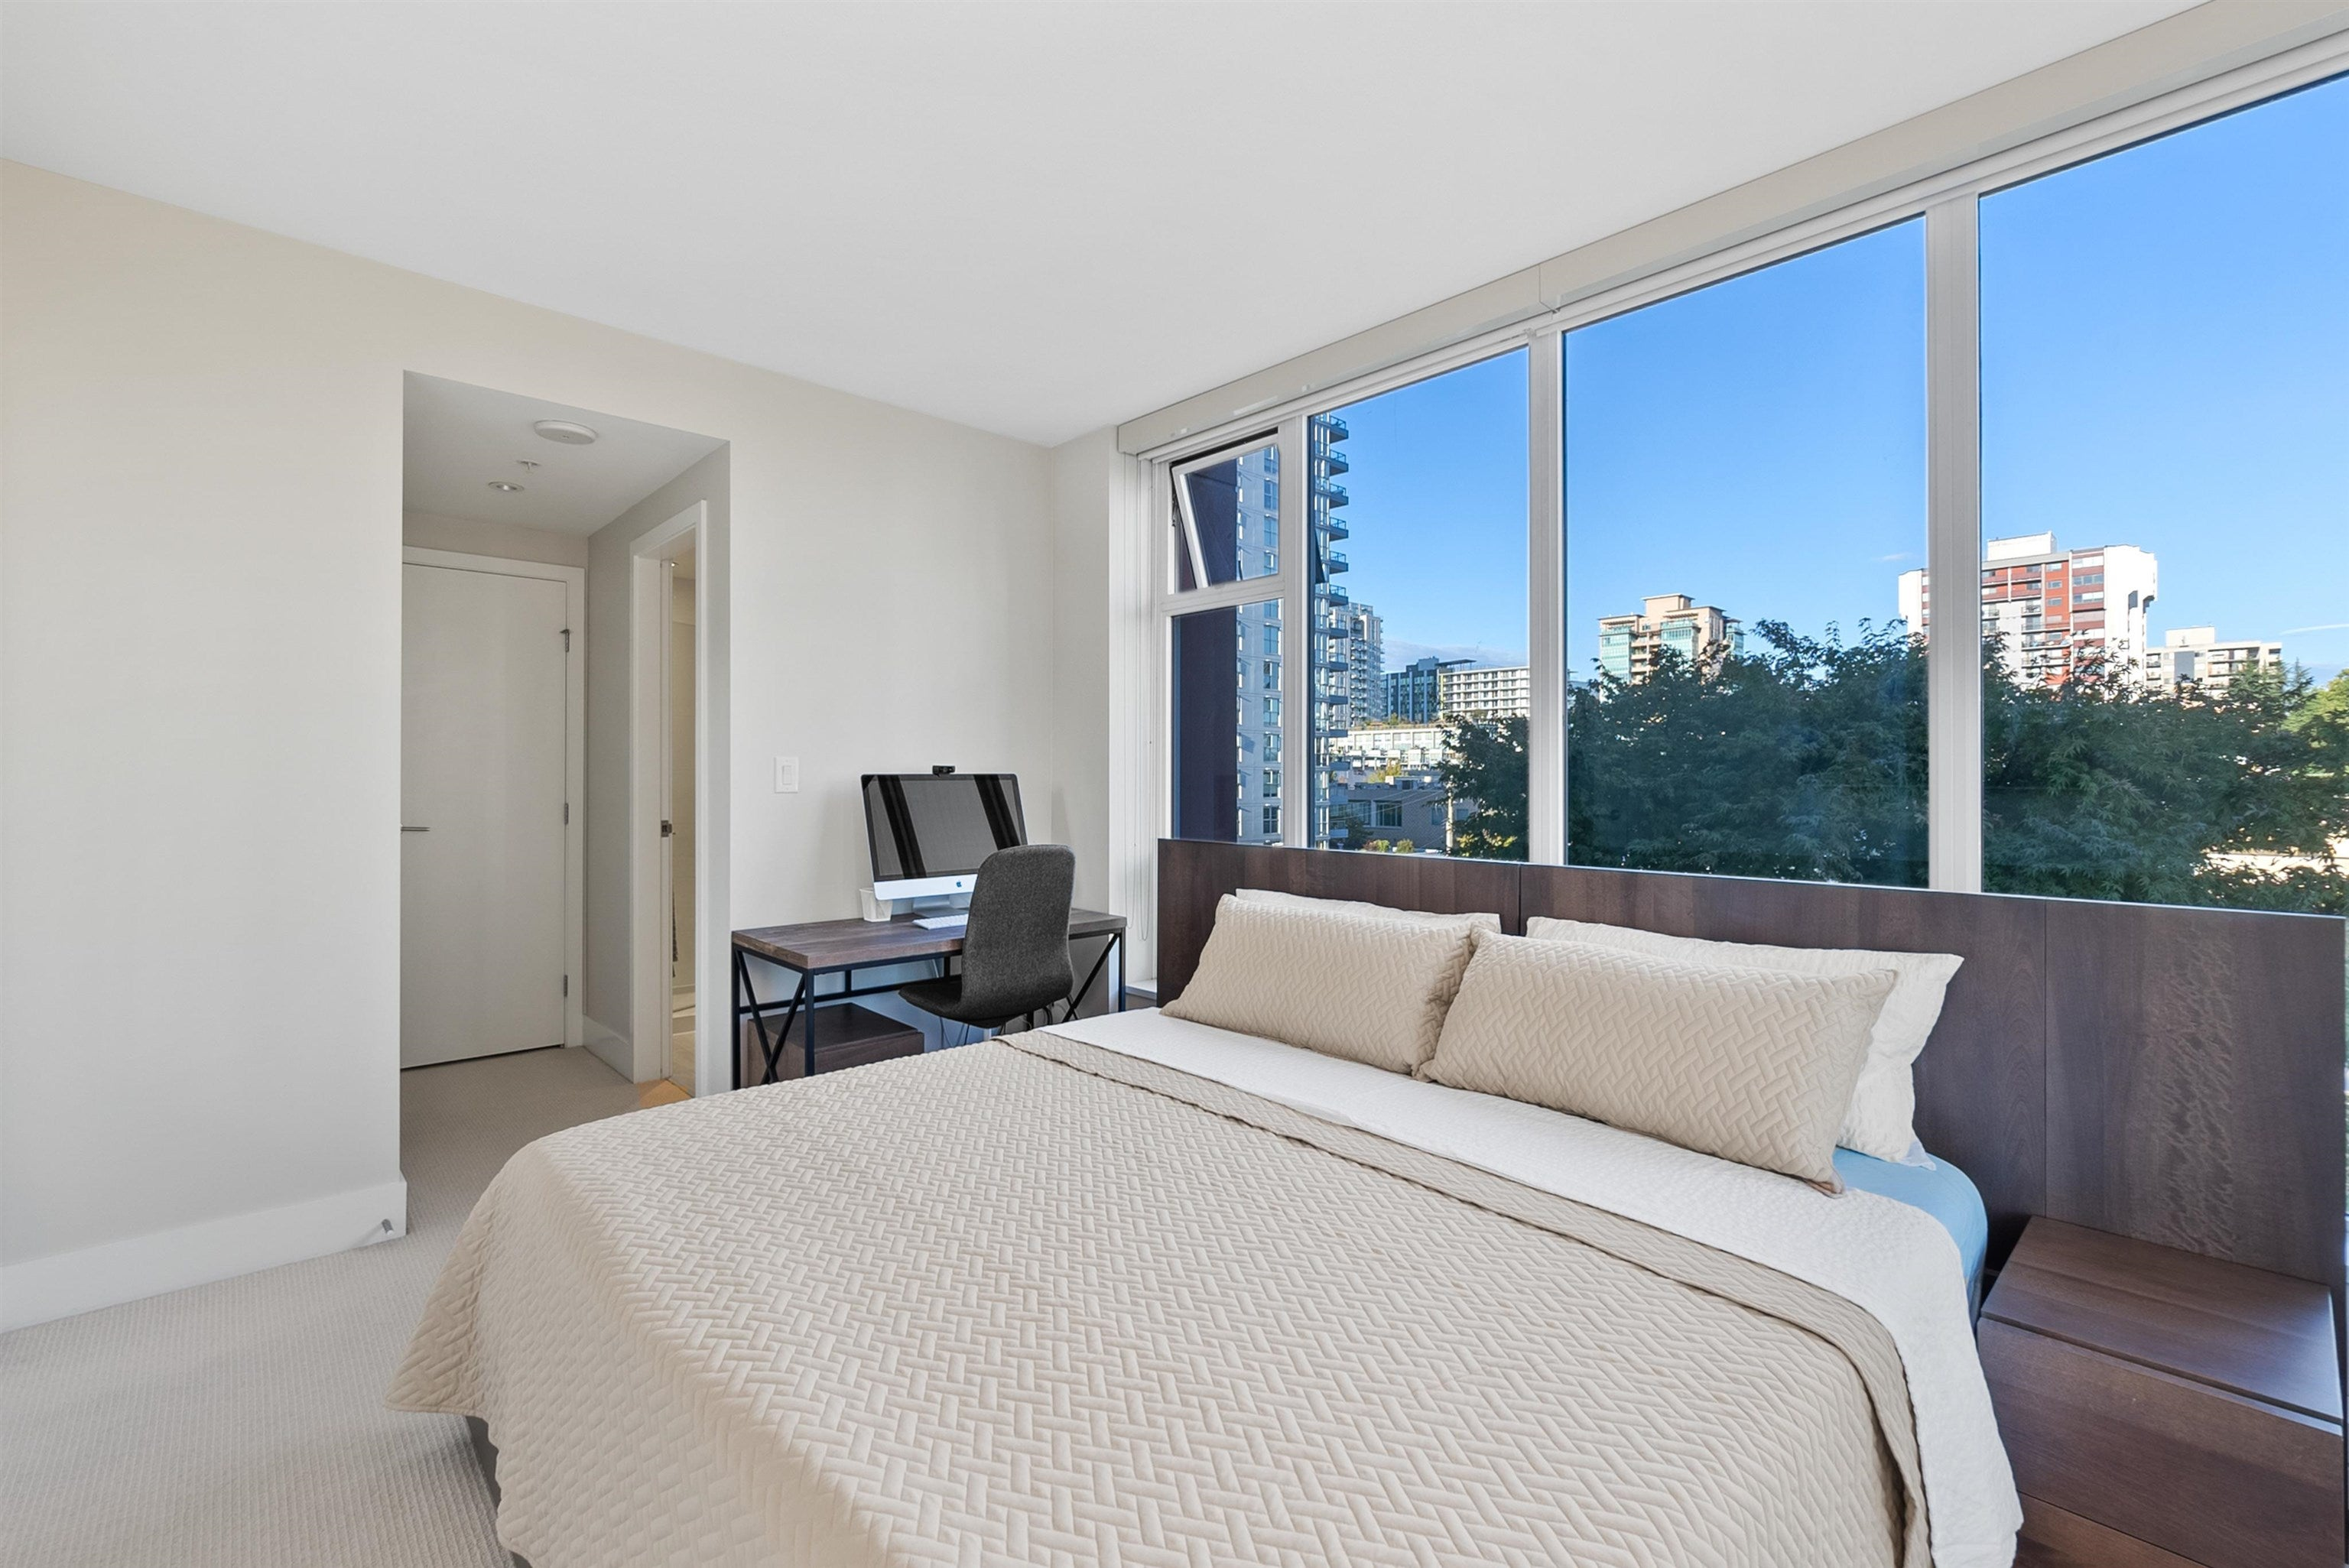 503 150 W 15TH STREET - Central Lonsdale Apartment/Condo for sale, 2 Bedrooms (R2624732) - #16